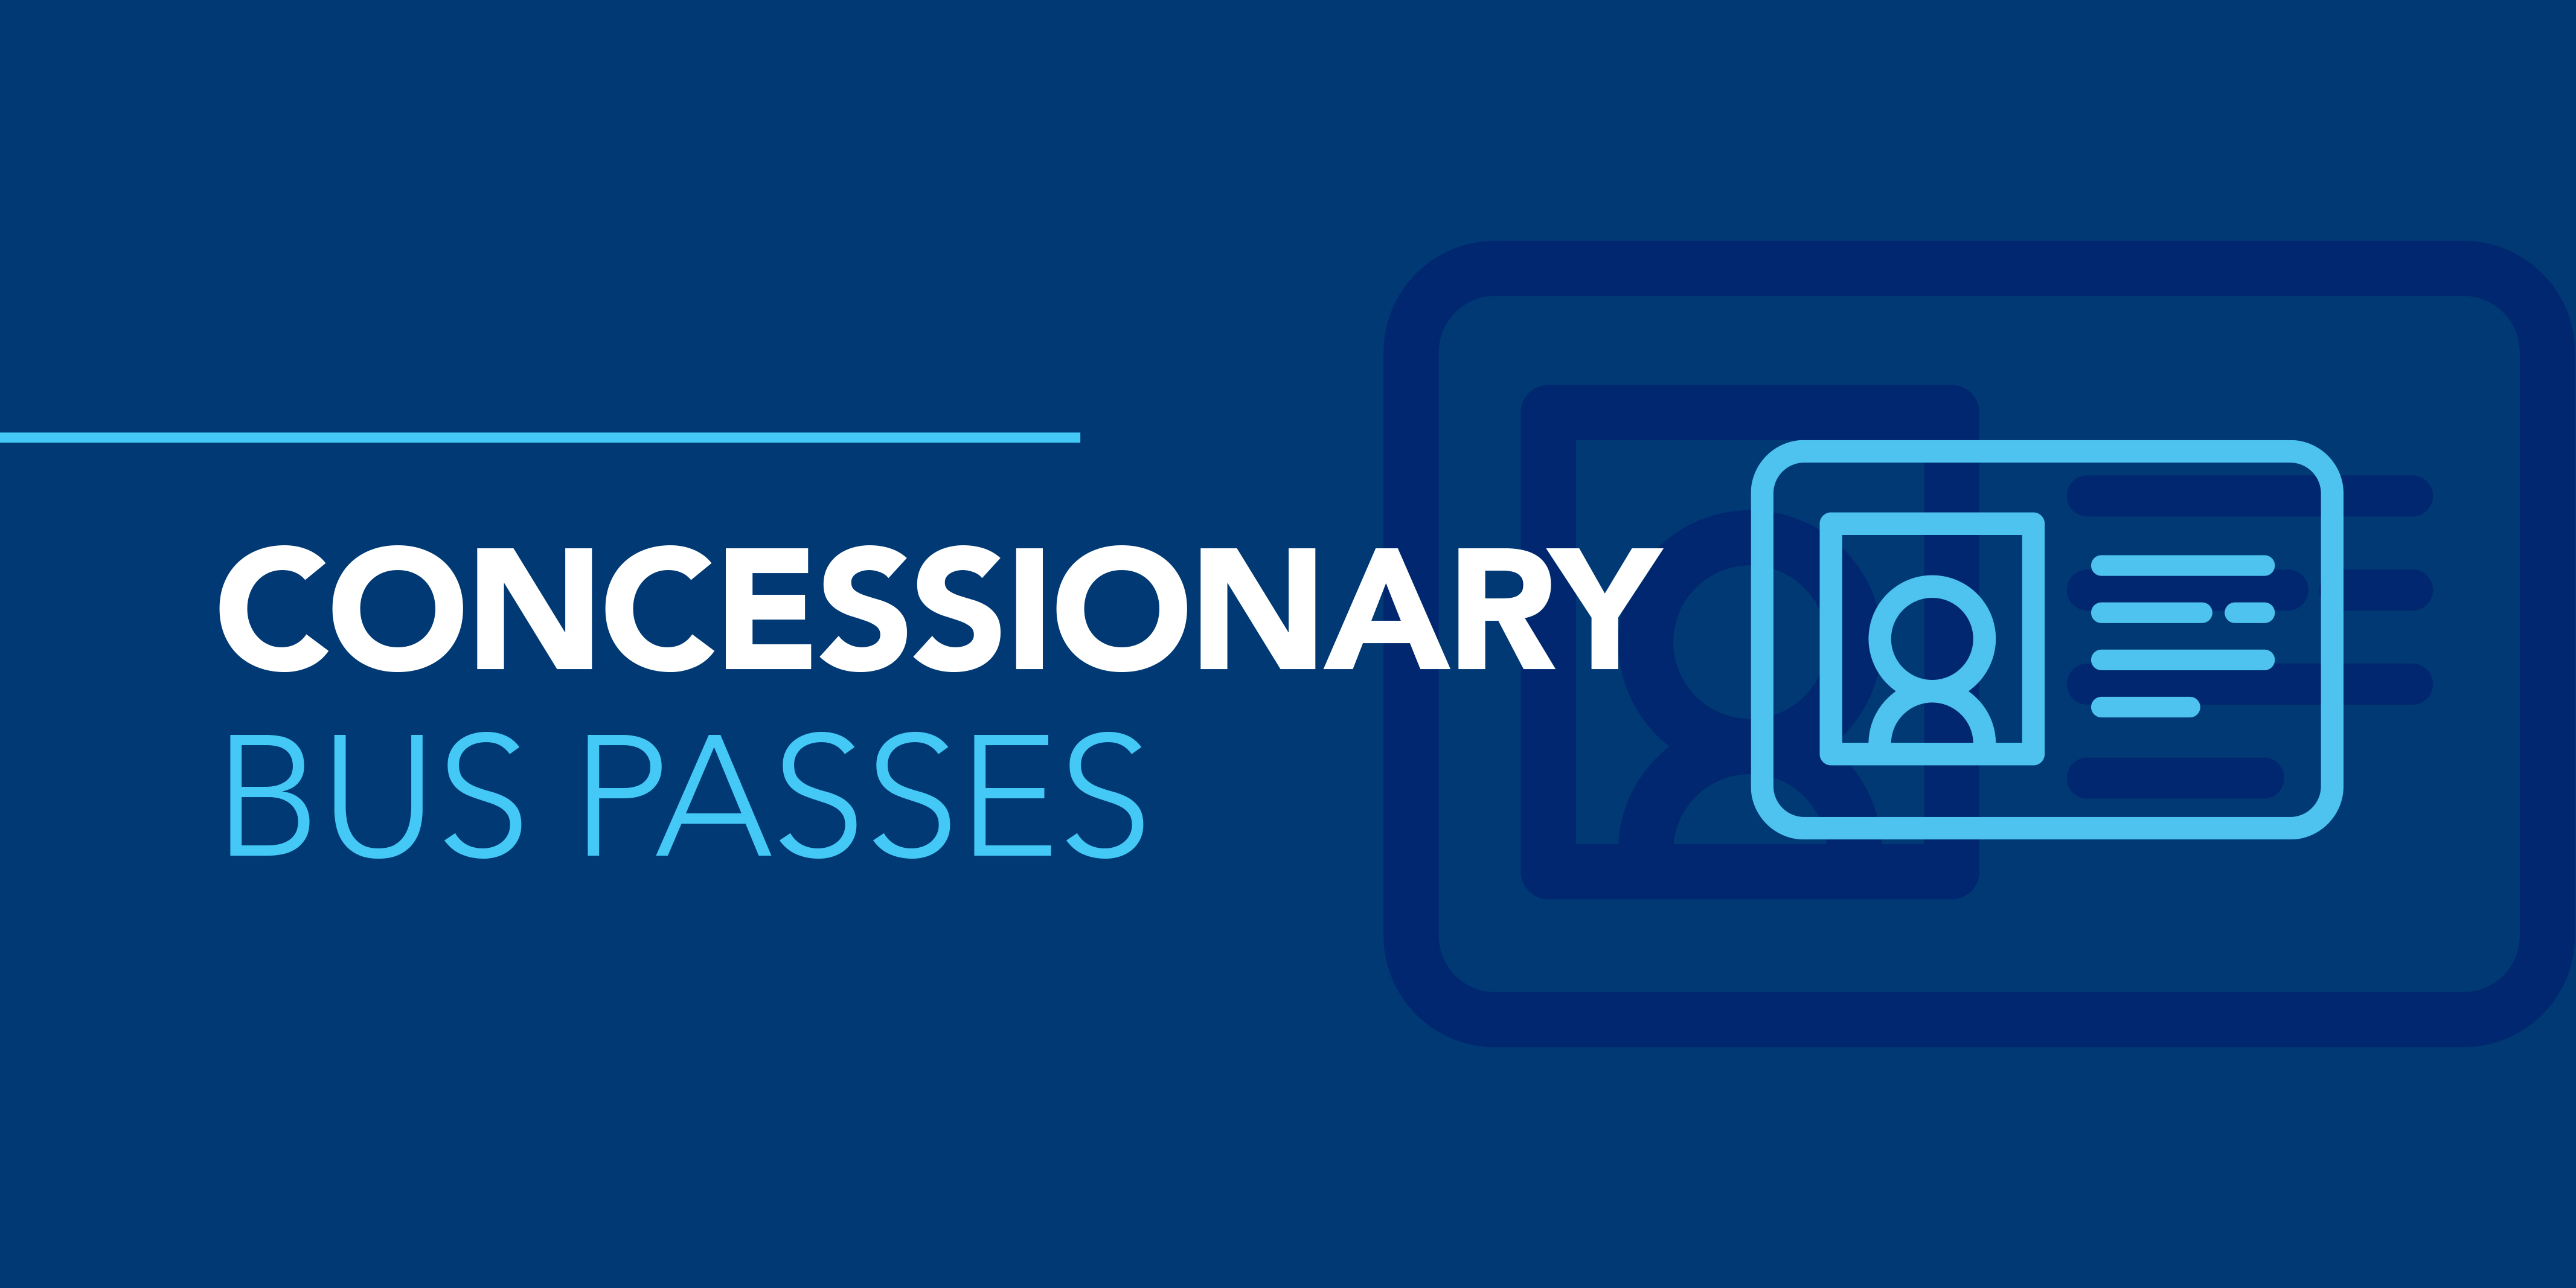 Image reading 'Concessionary Bus Passes'